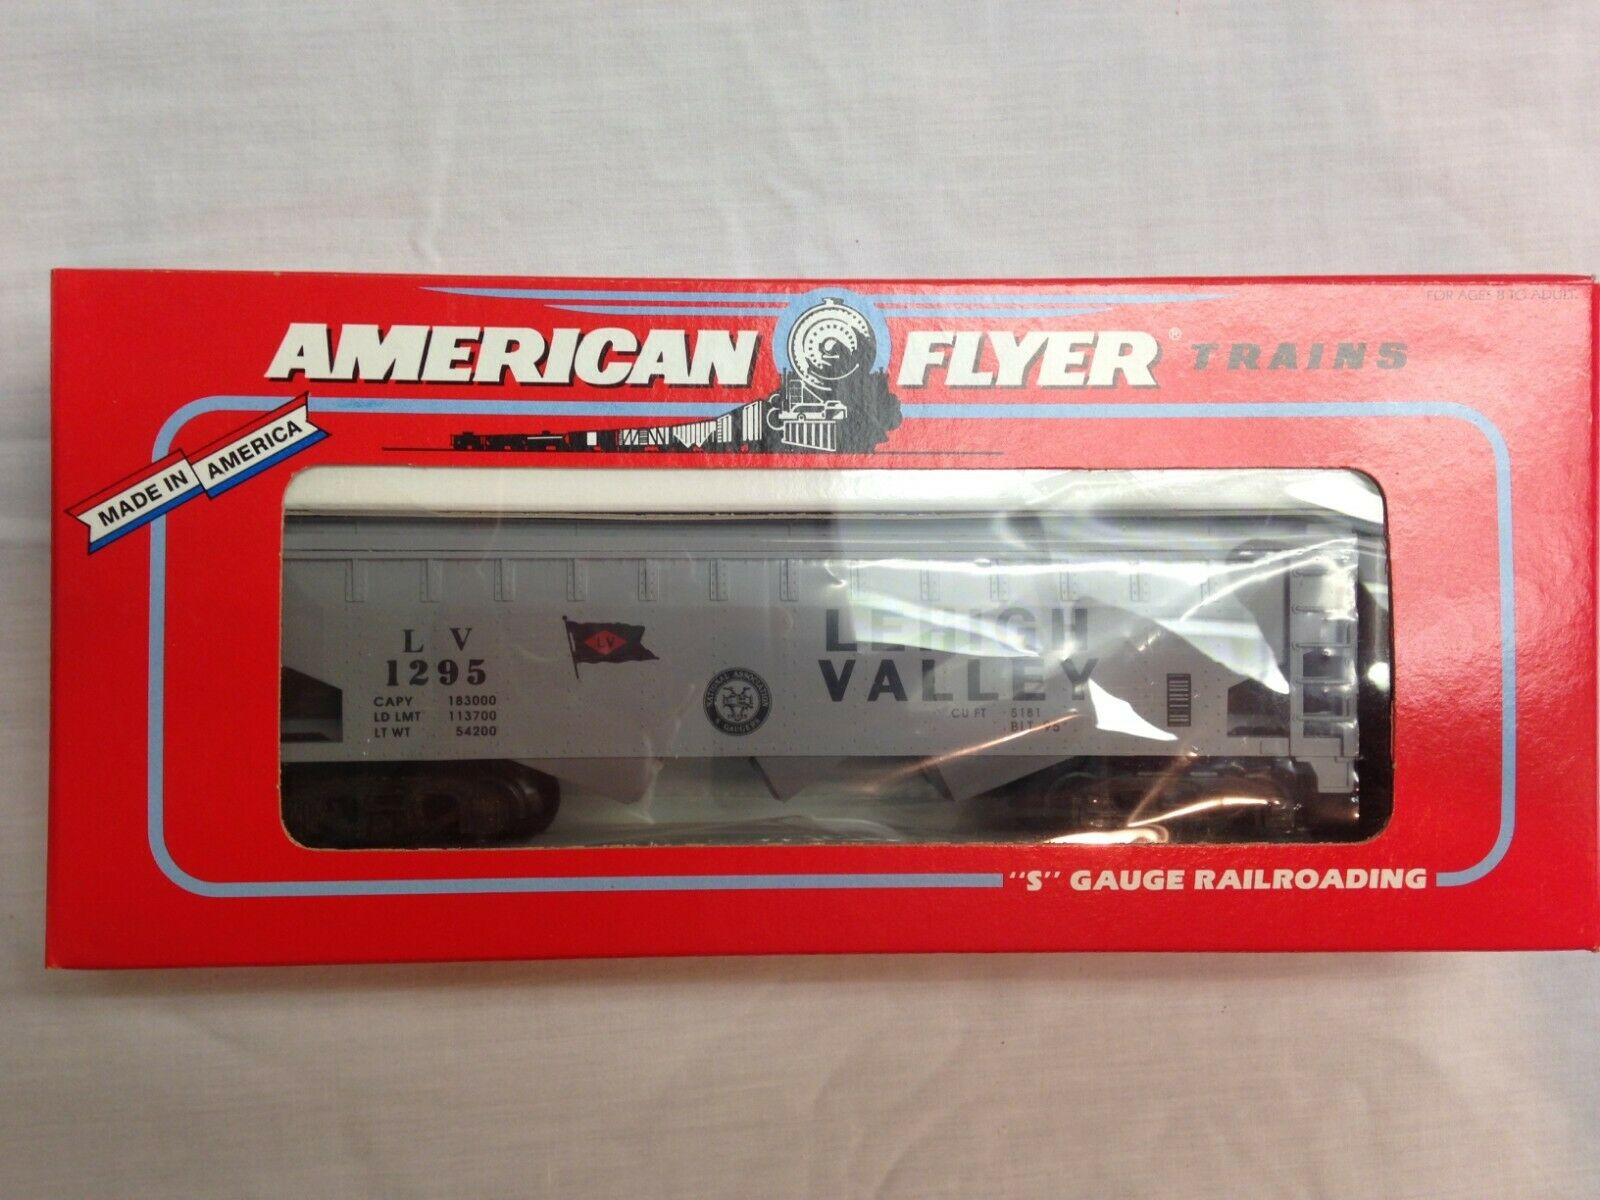 American Flyer Lionel 484941995 Lehigh Valley Coverosso Hopper